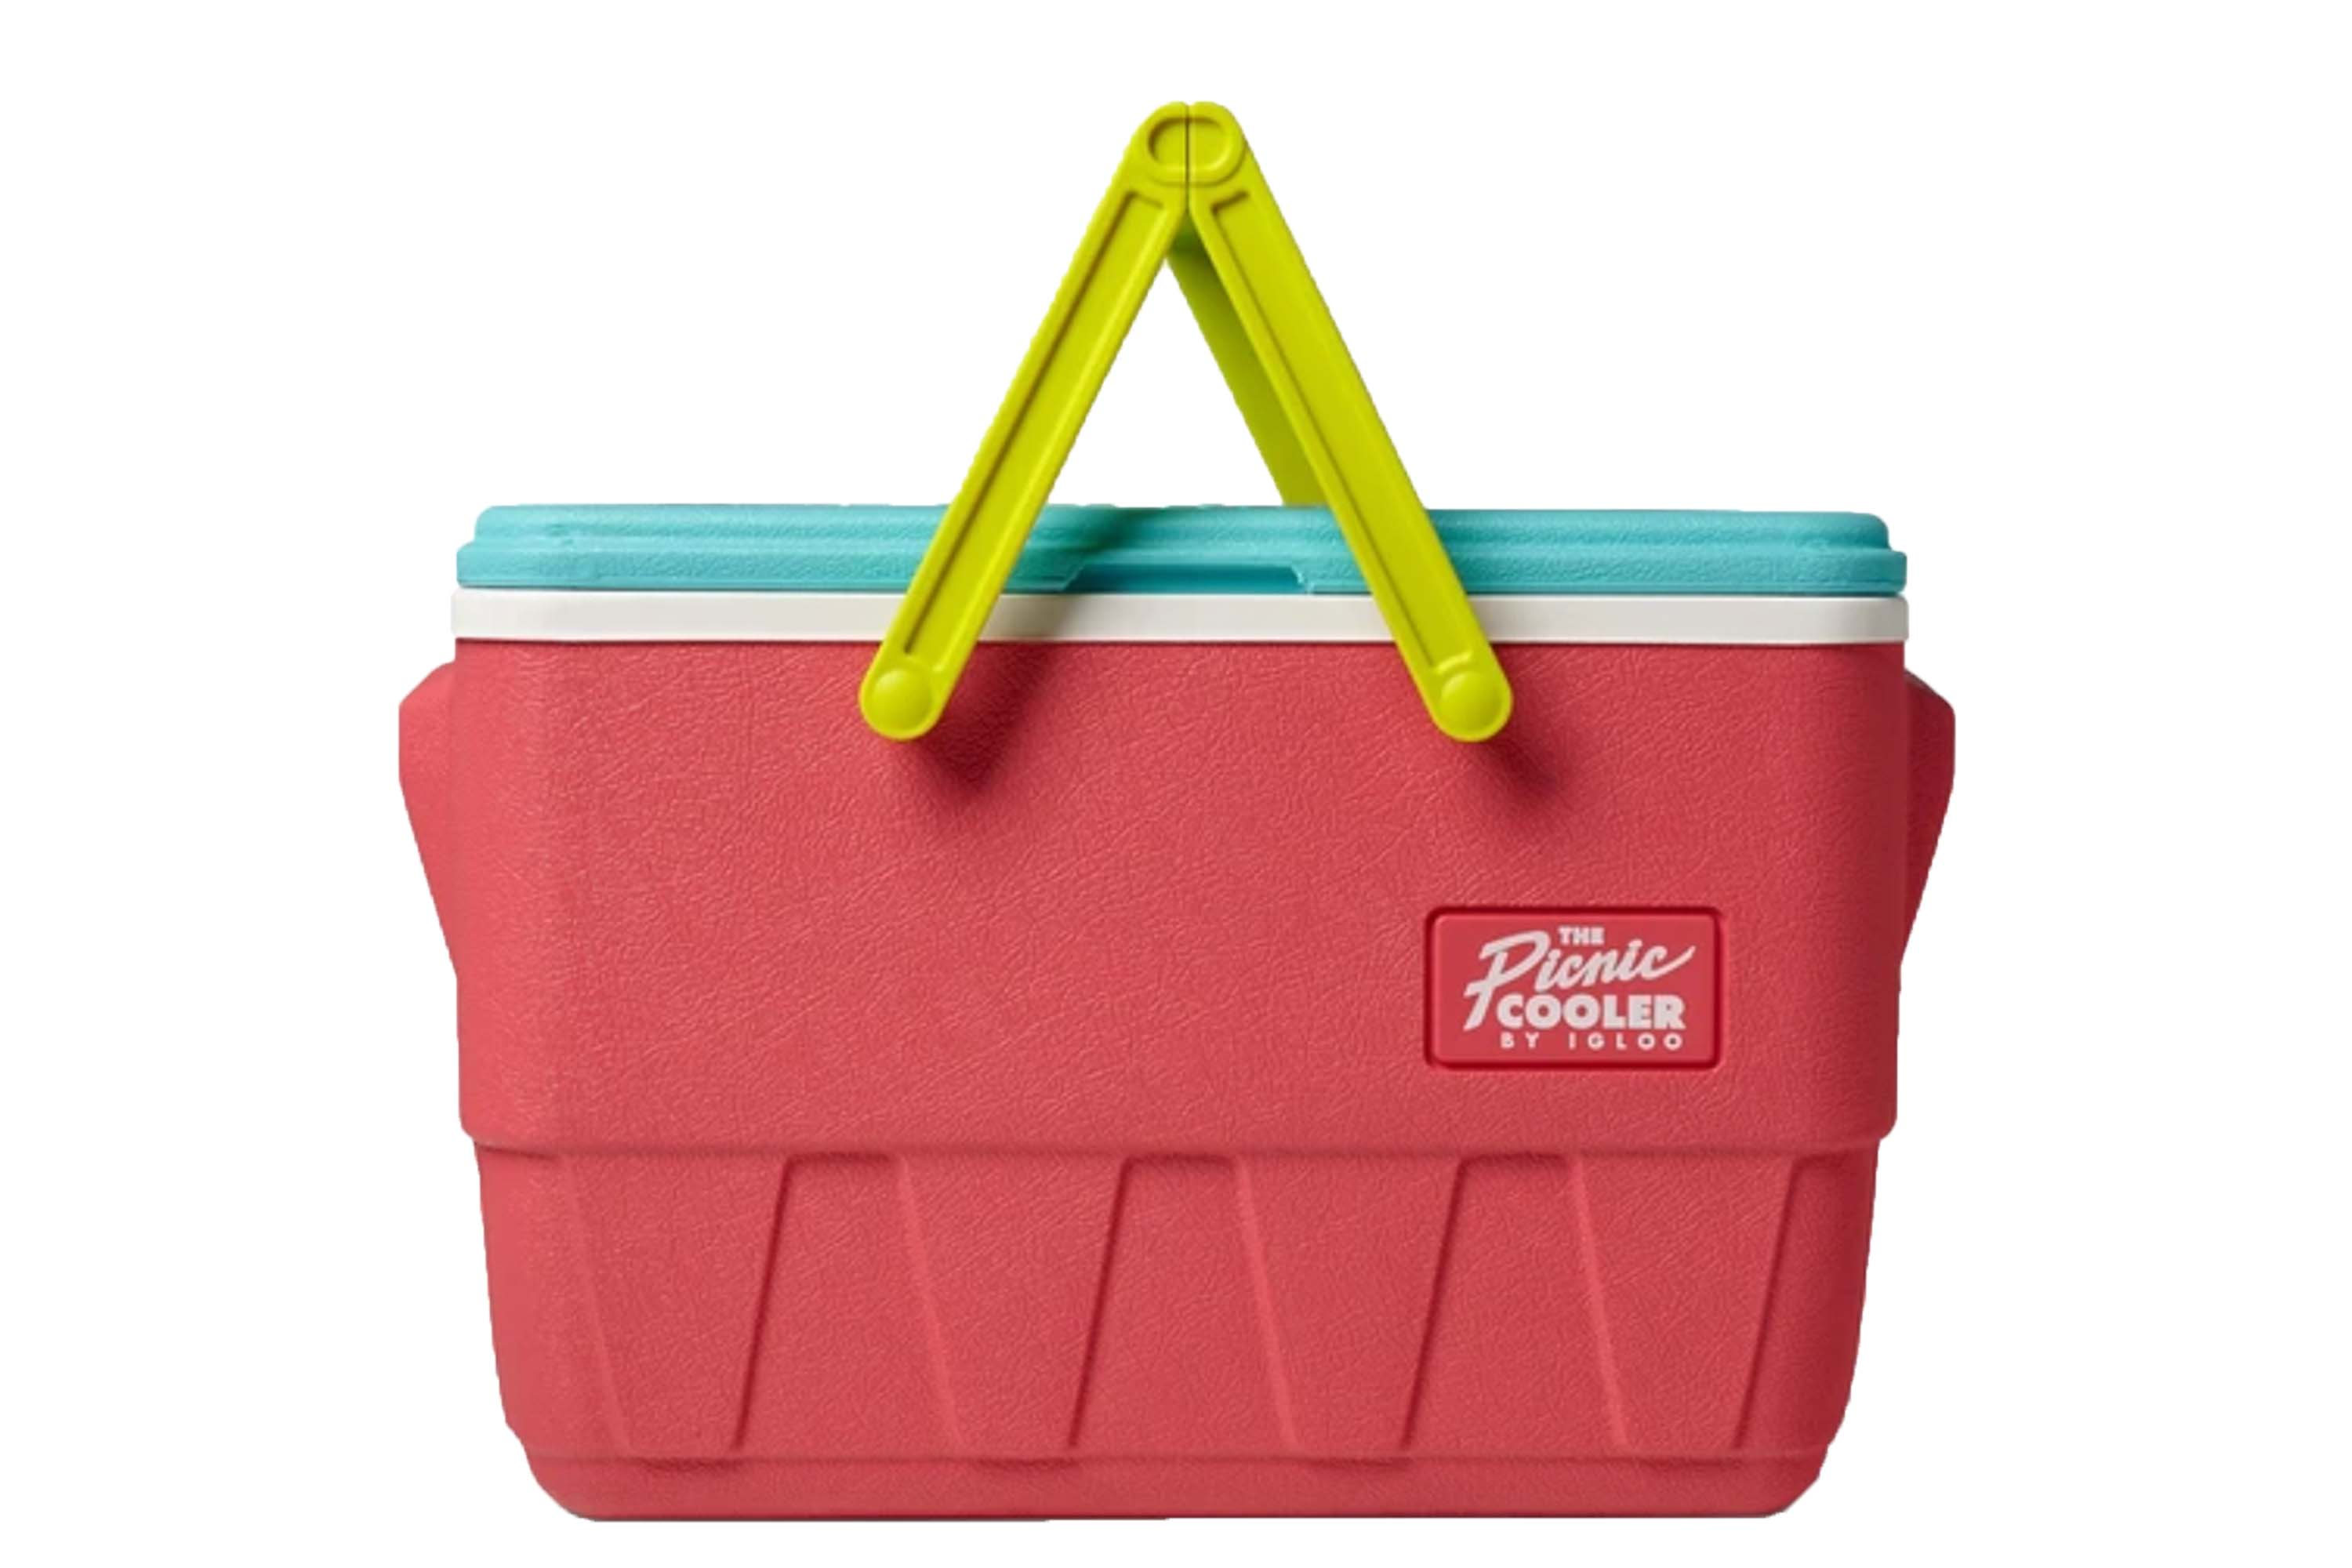 igloo retro cooler with red body and watermelon handles and lid